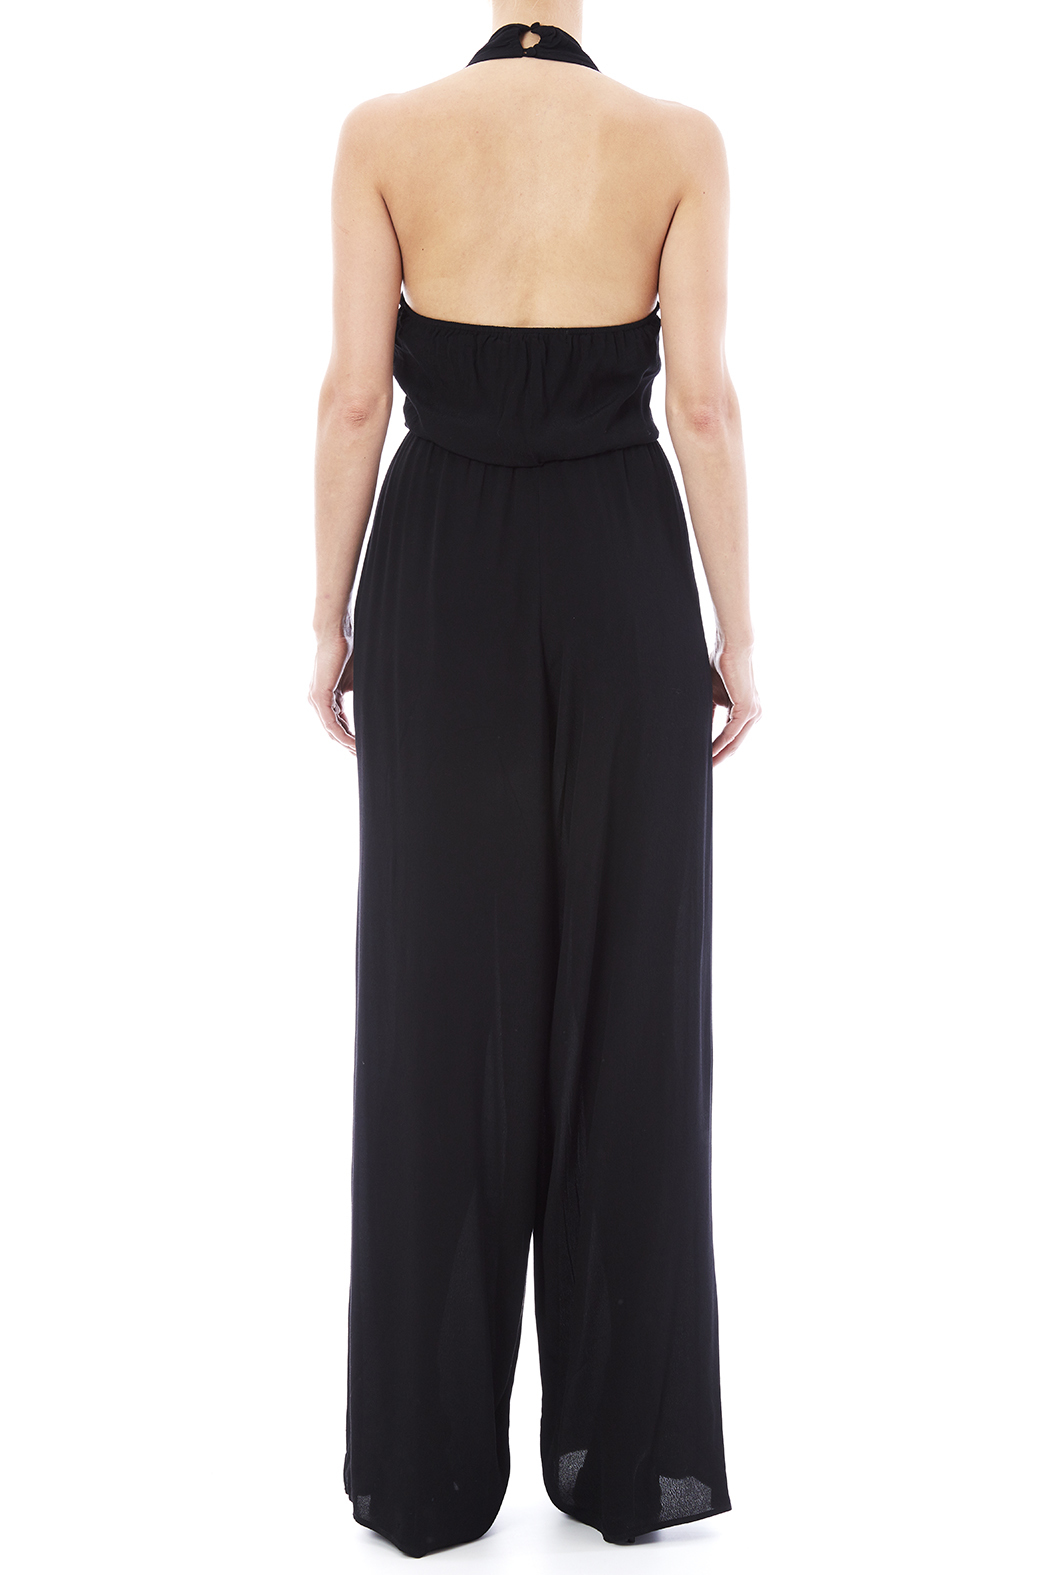 Bishop + Young Halter Jumpsuit - Back Cropped Image